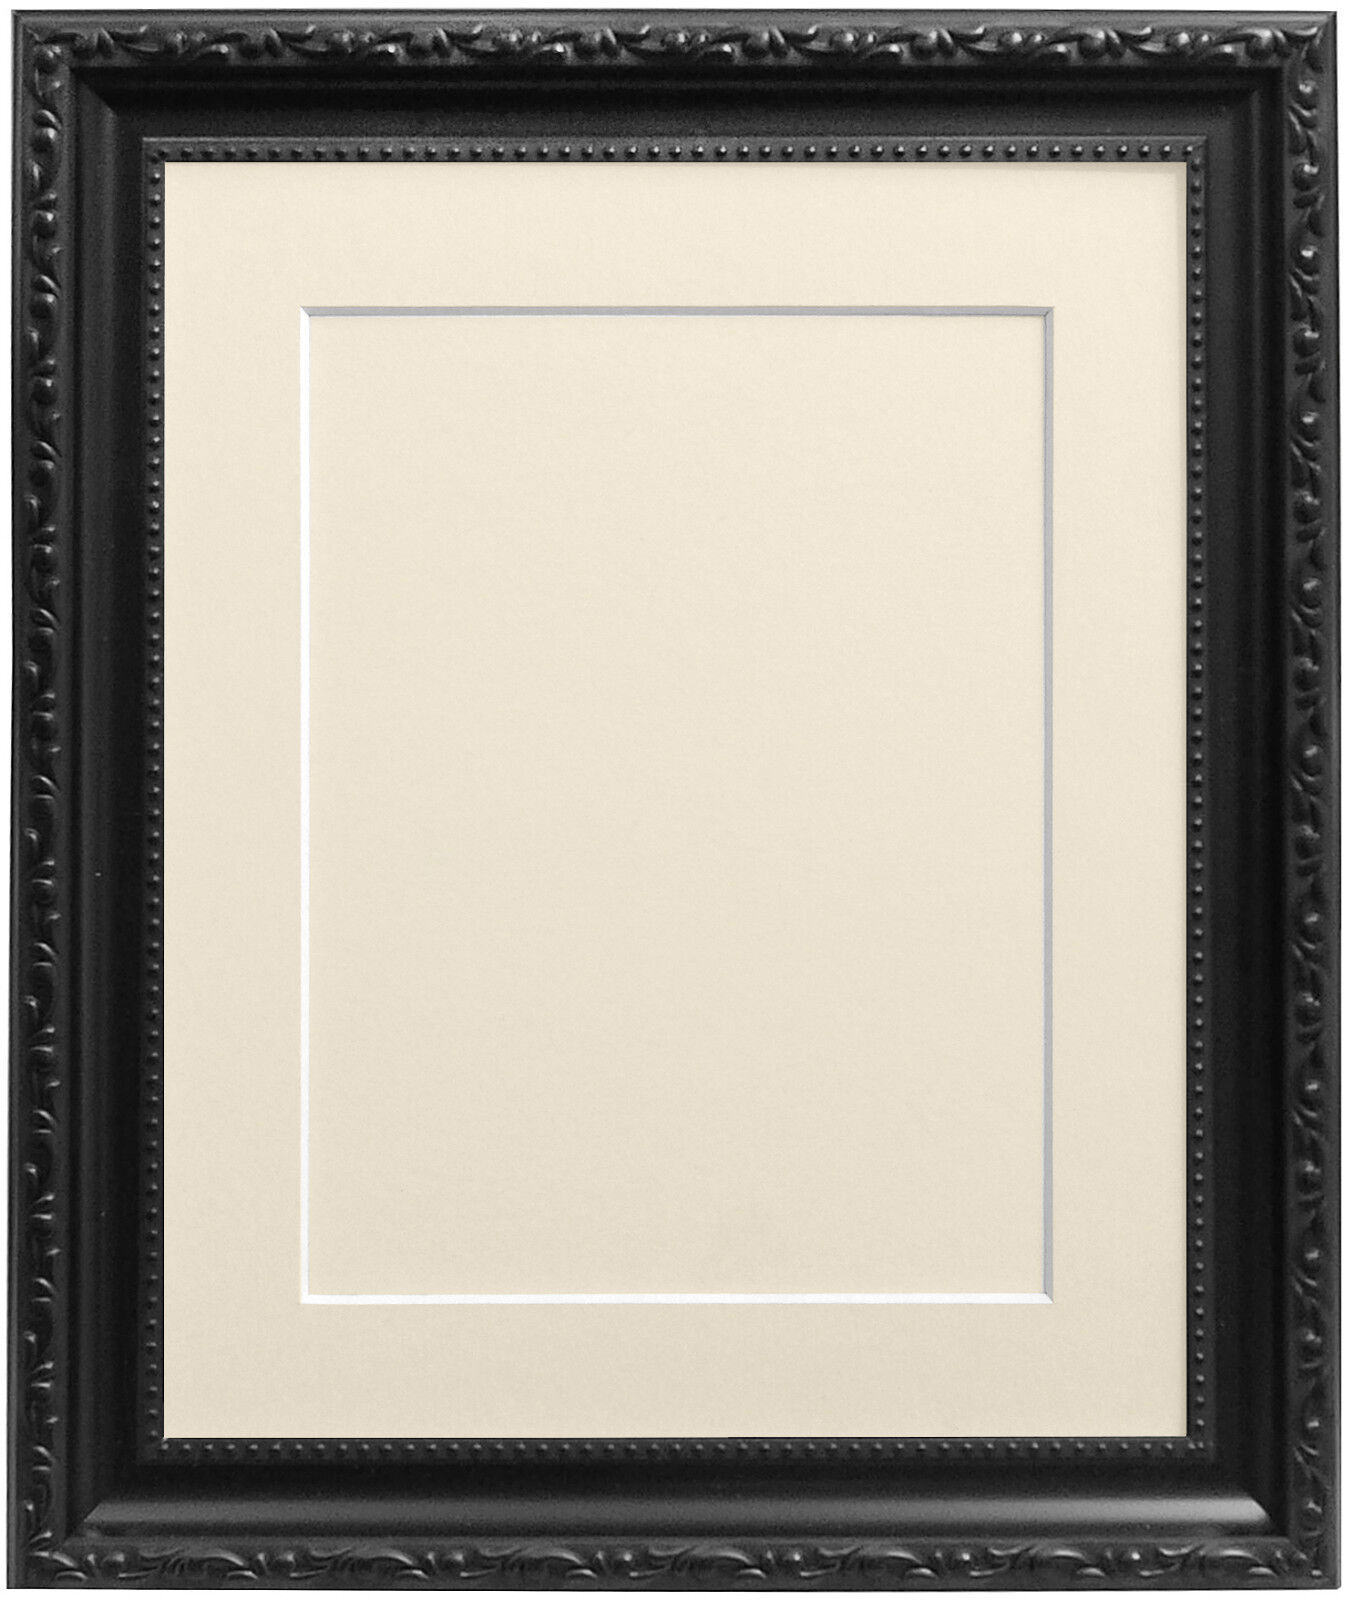 Black Shabby Chic Photo Picture Frames with Mount Backing Board ...